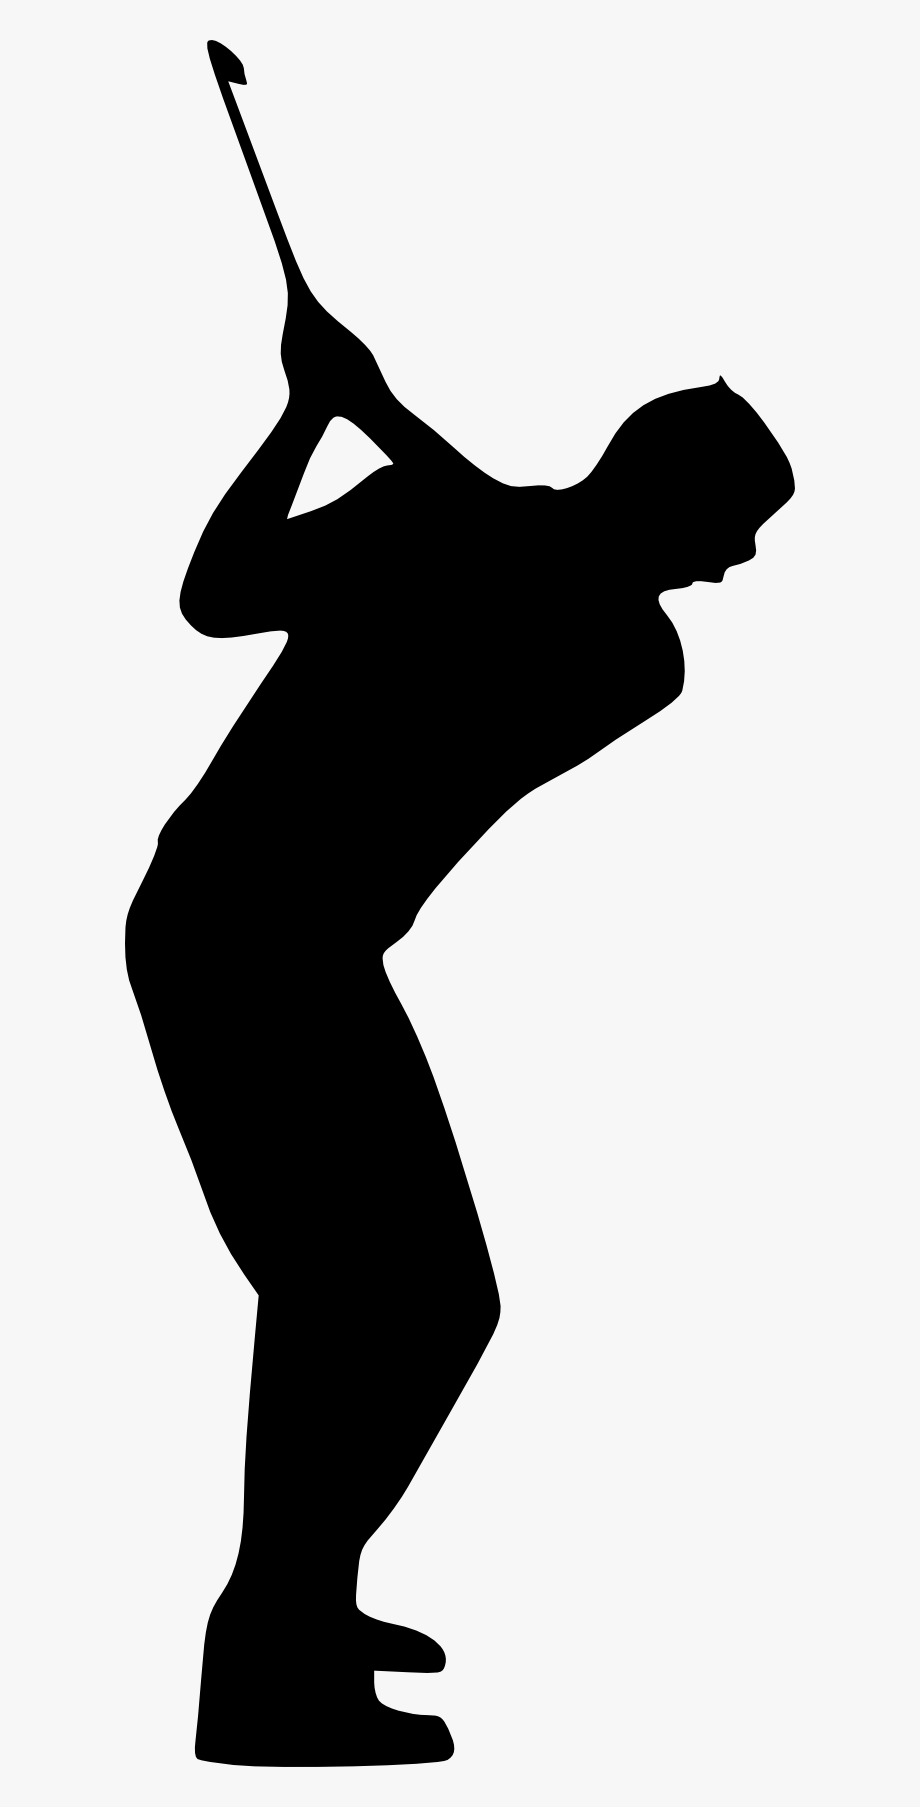 Golfer clipart transparent background. Stock golf course silhouette